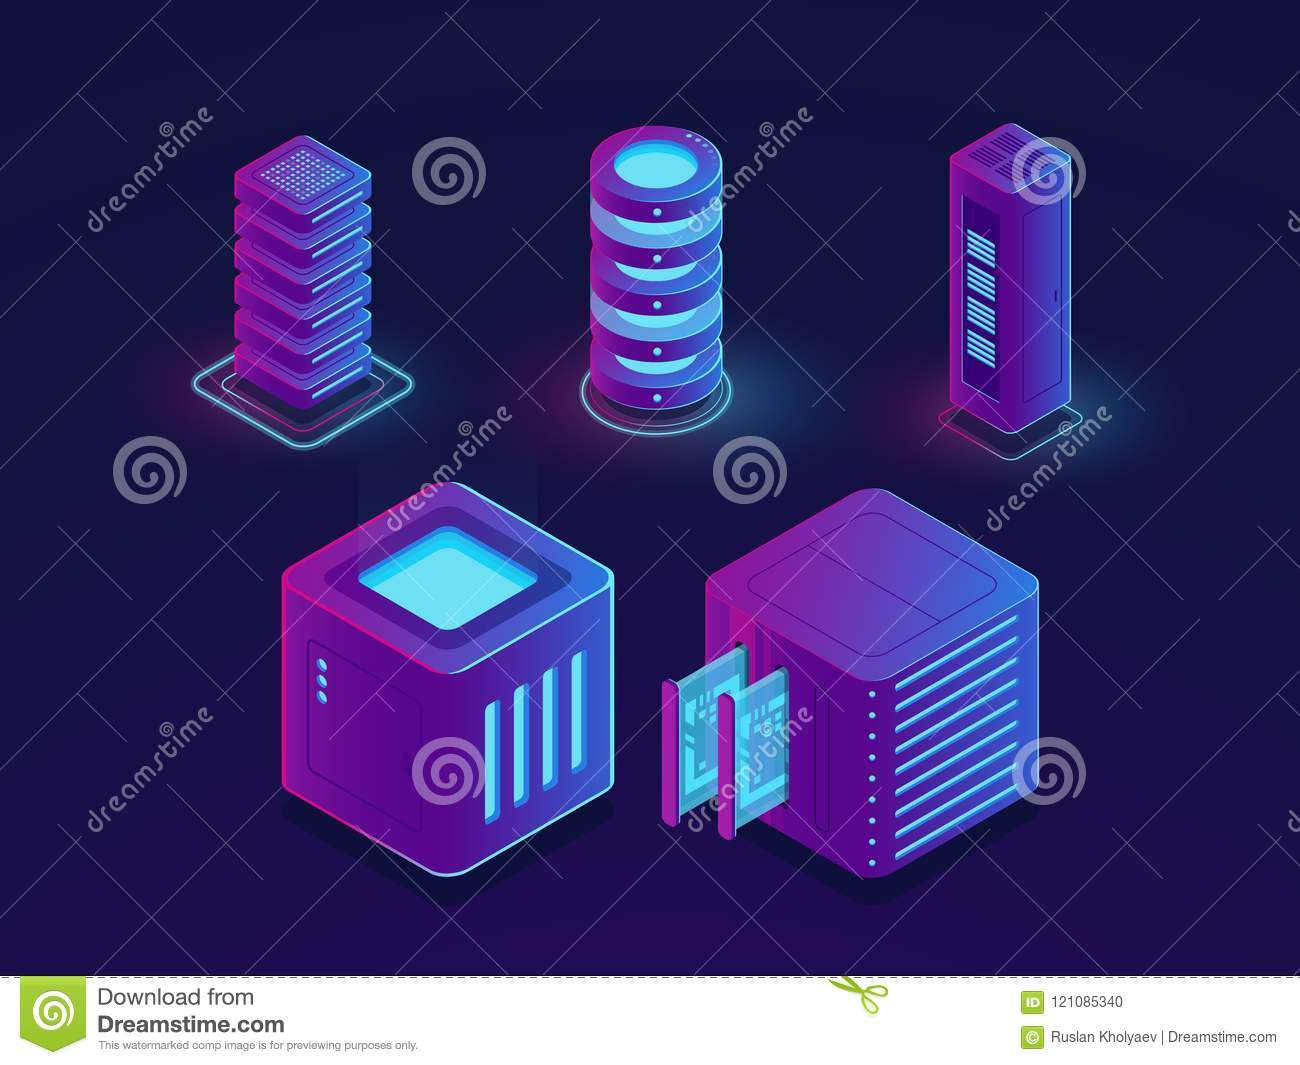 Set of technology elements, server room, cloud data storage, future data science progress objects isometric vector